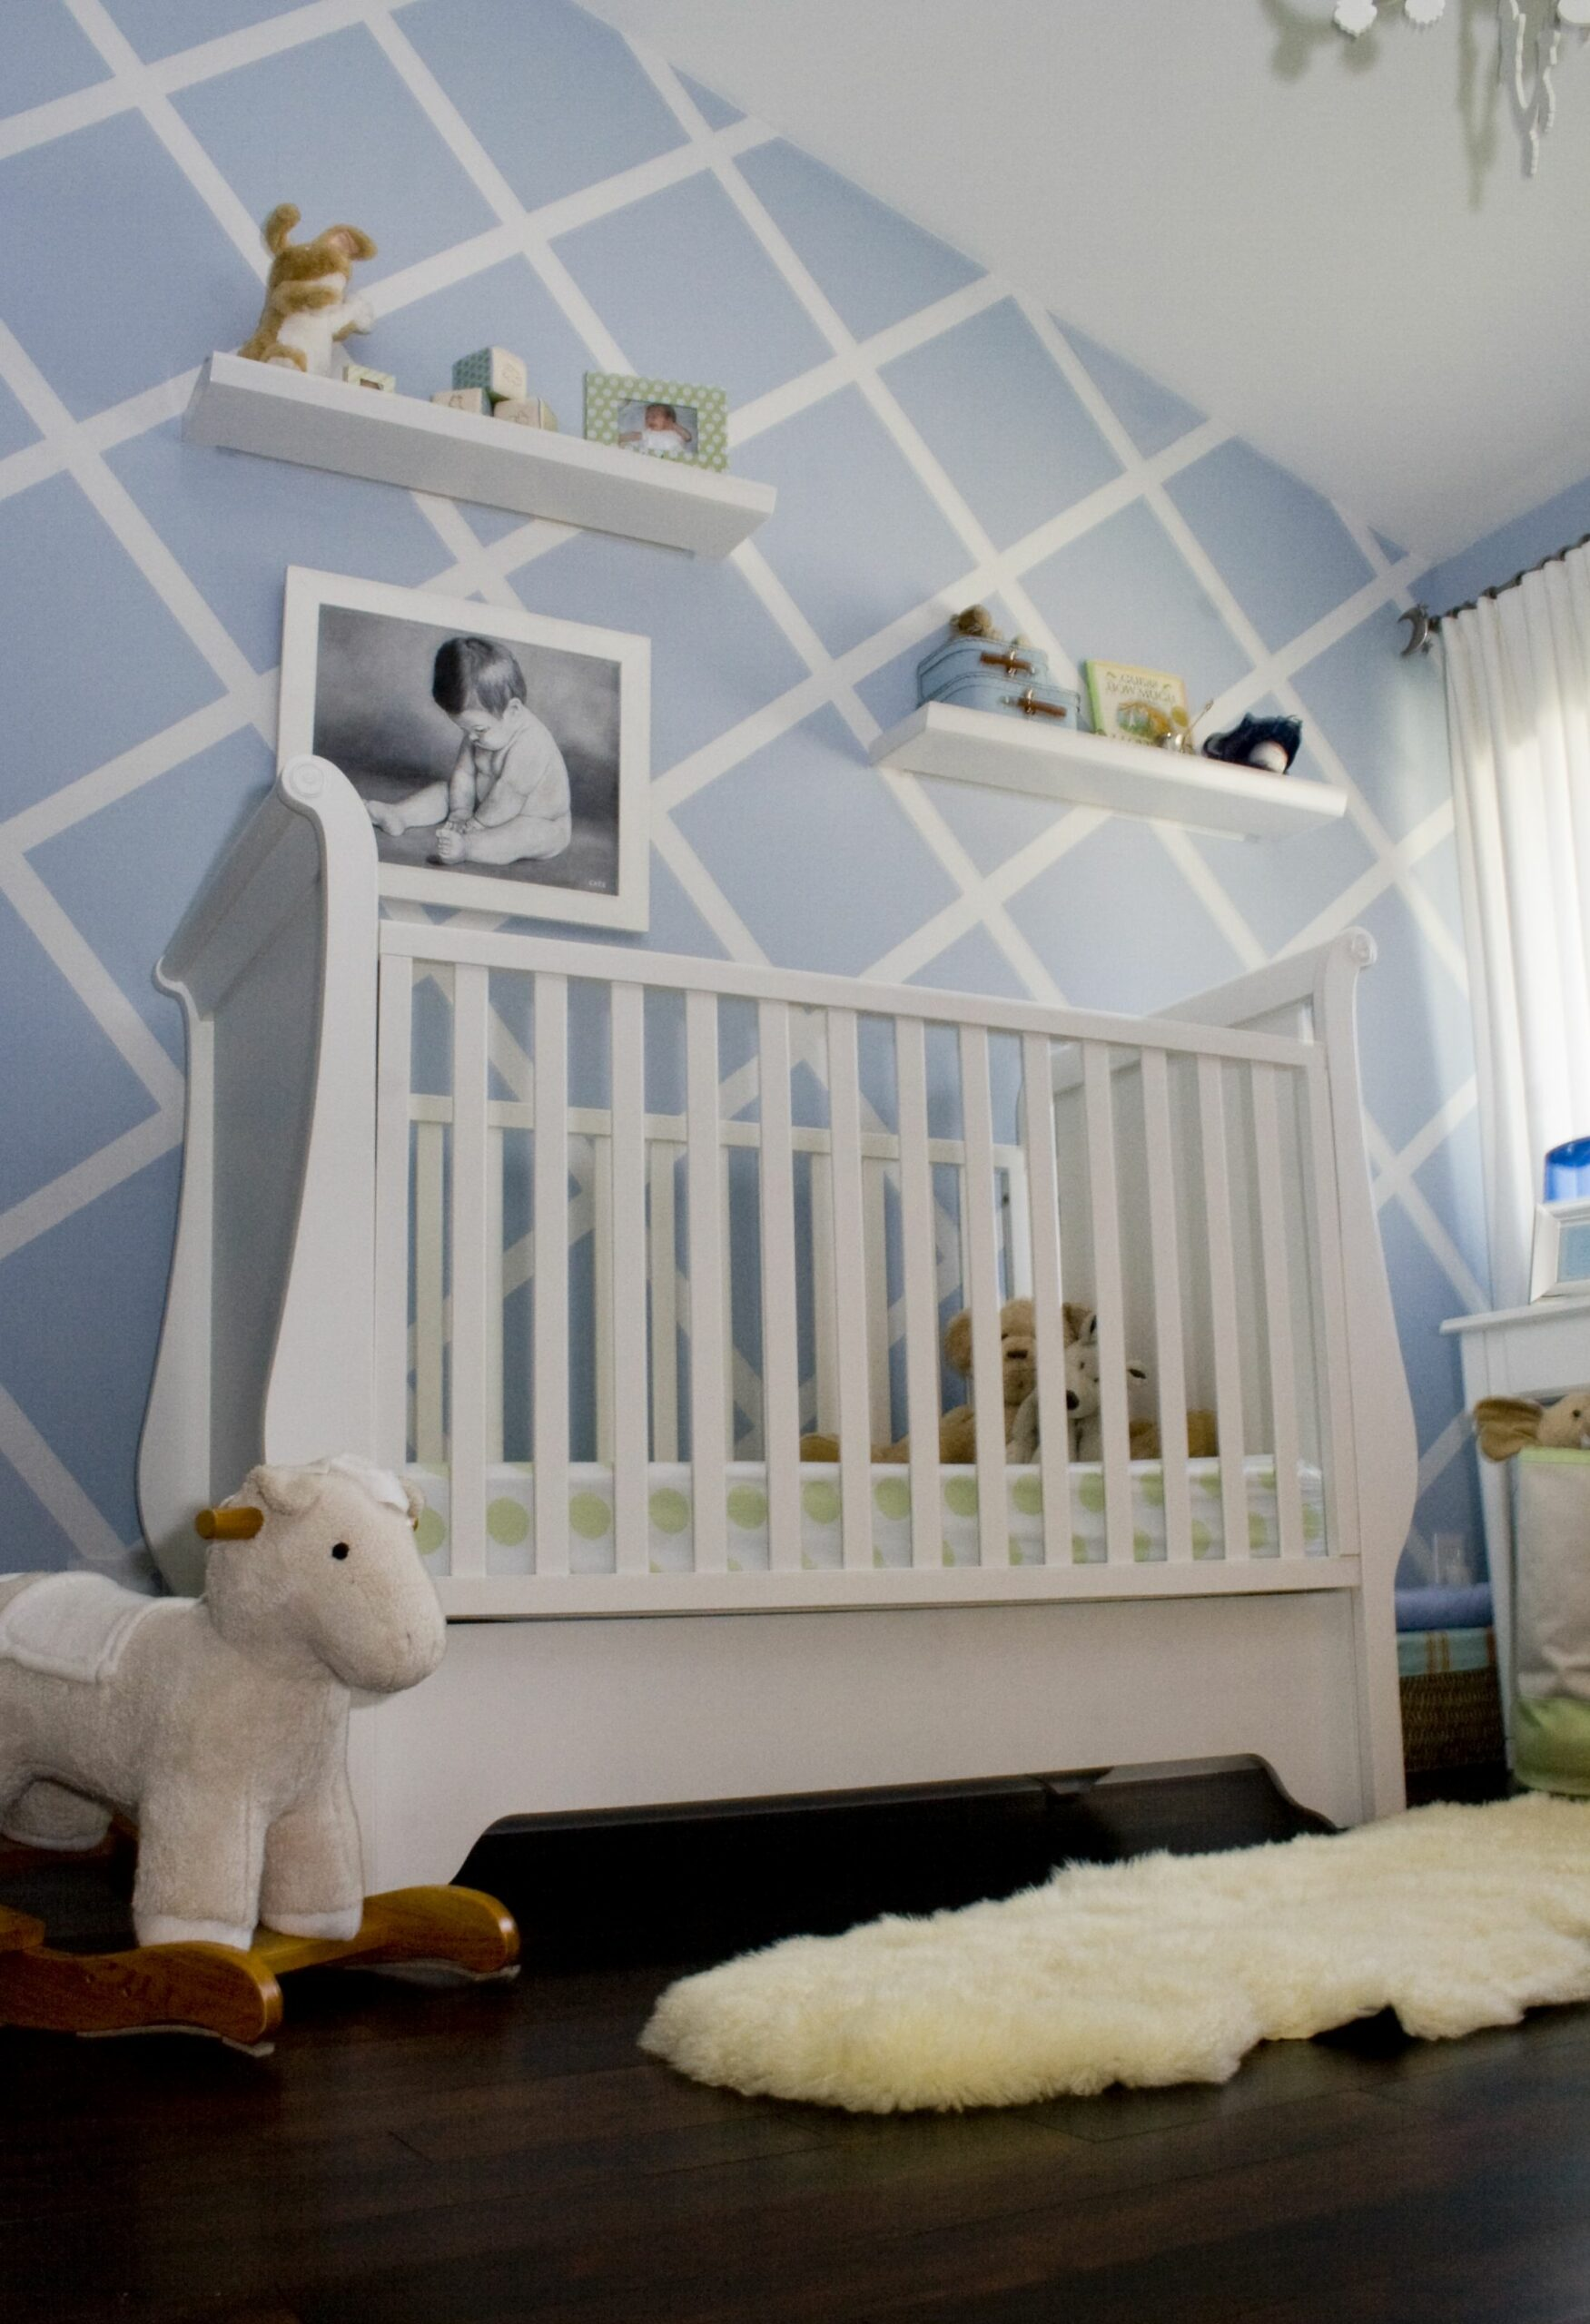 10 Reasons to Paint Your Nursery Blue - Project Nursery - baby room accent wall